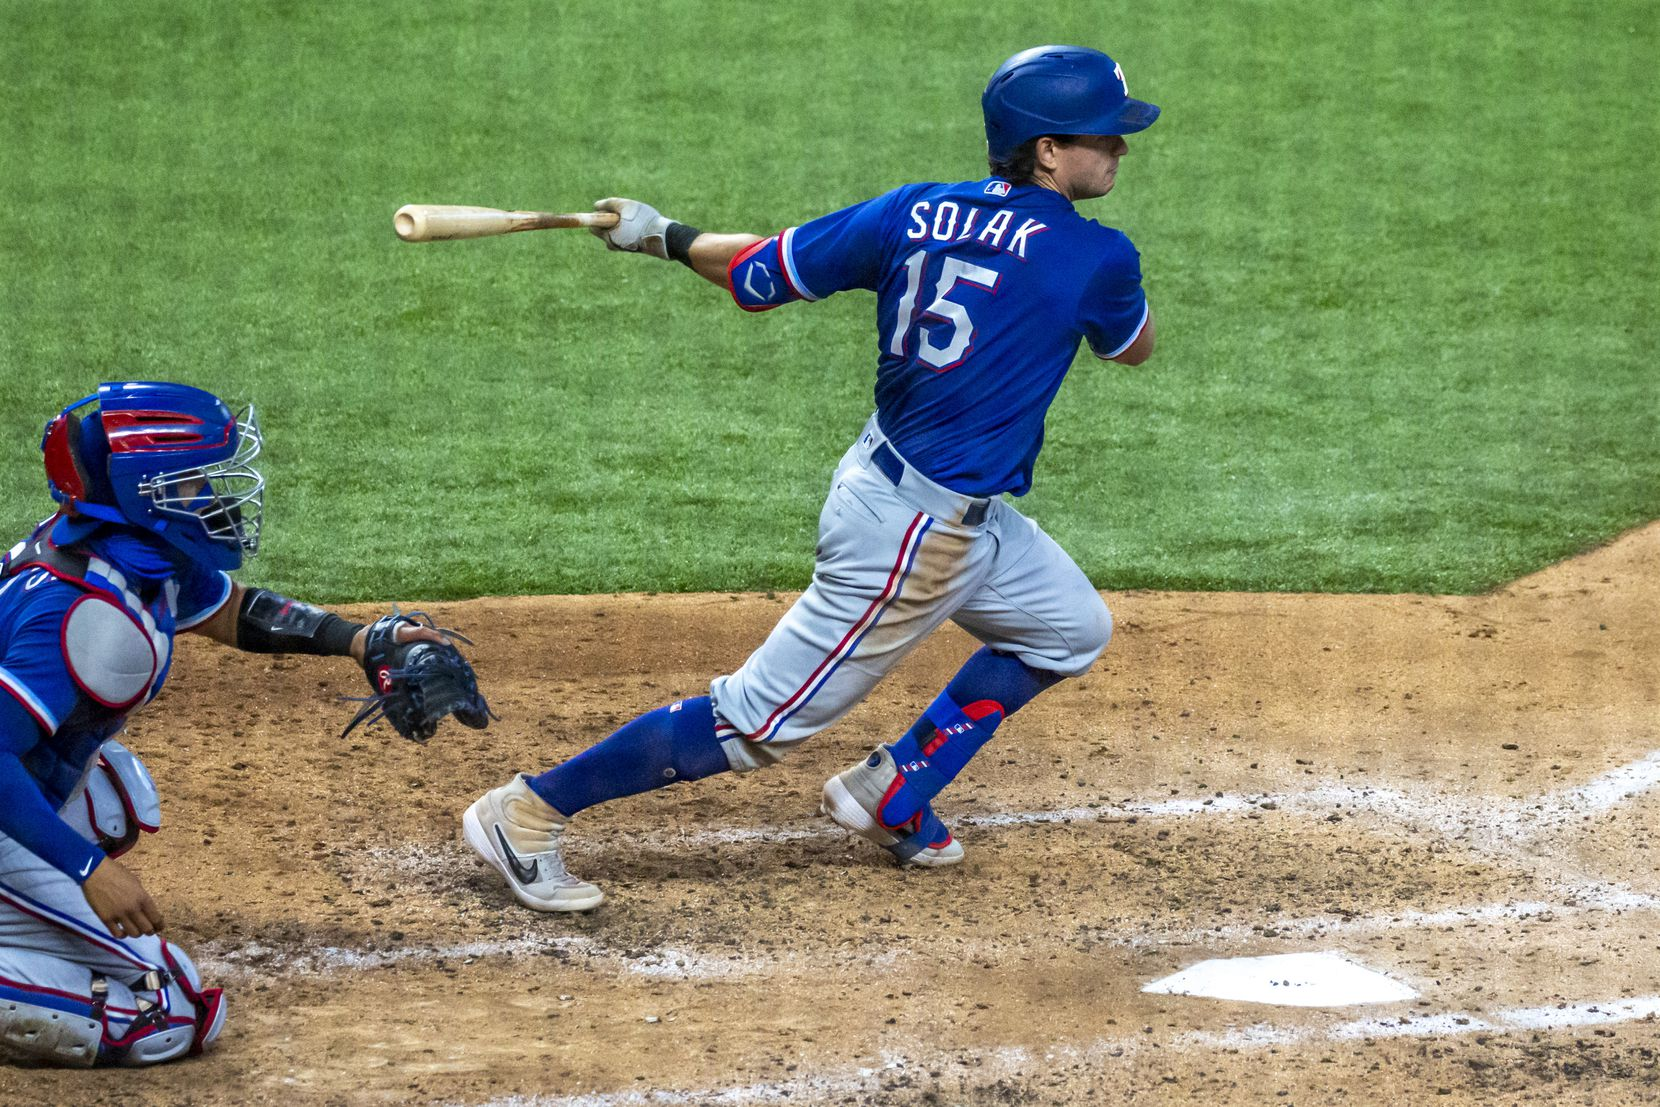 Texas Rangers outfielder Nick Solak runs for first during an intrasquad game at Summer Camp inside Globe Life Field in Arlington, Texas, on Saturday, July 11, 2020.